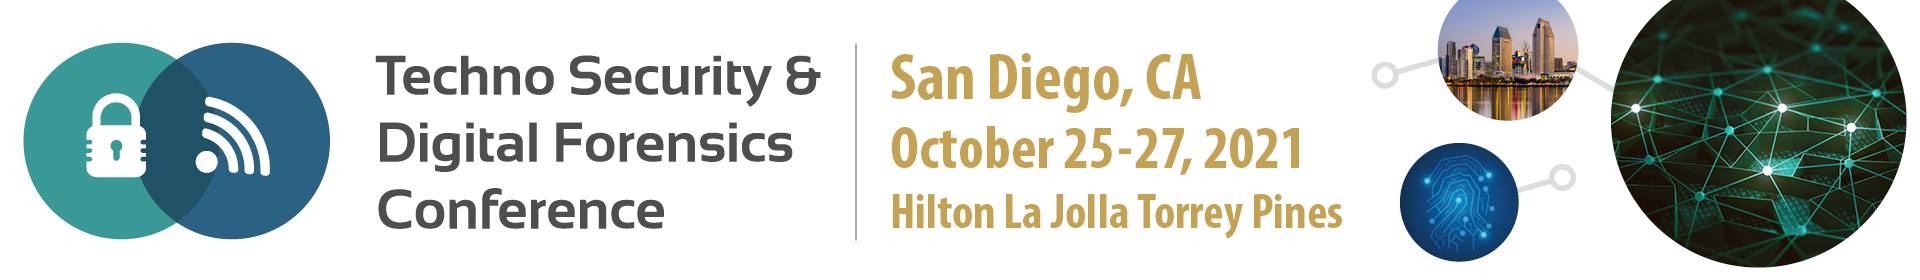 Techno Security & Digital Forensics Conference - California Event Banner